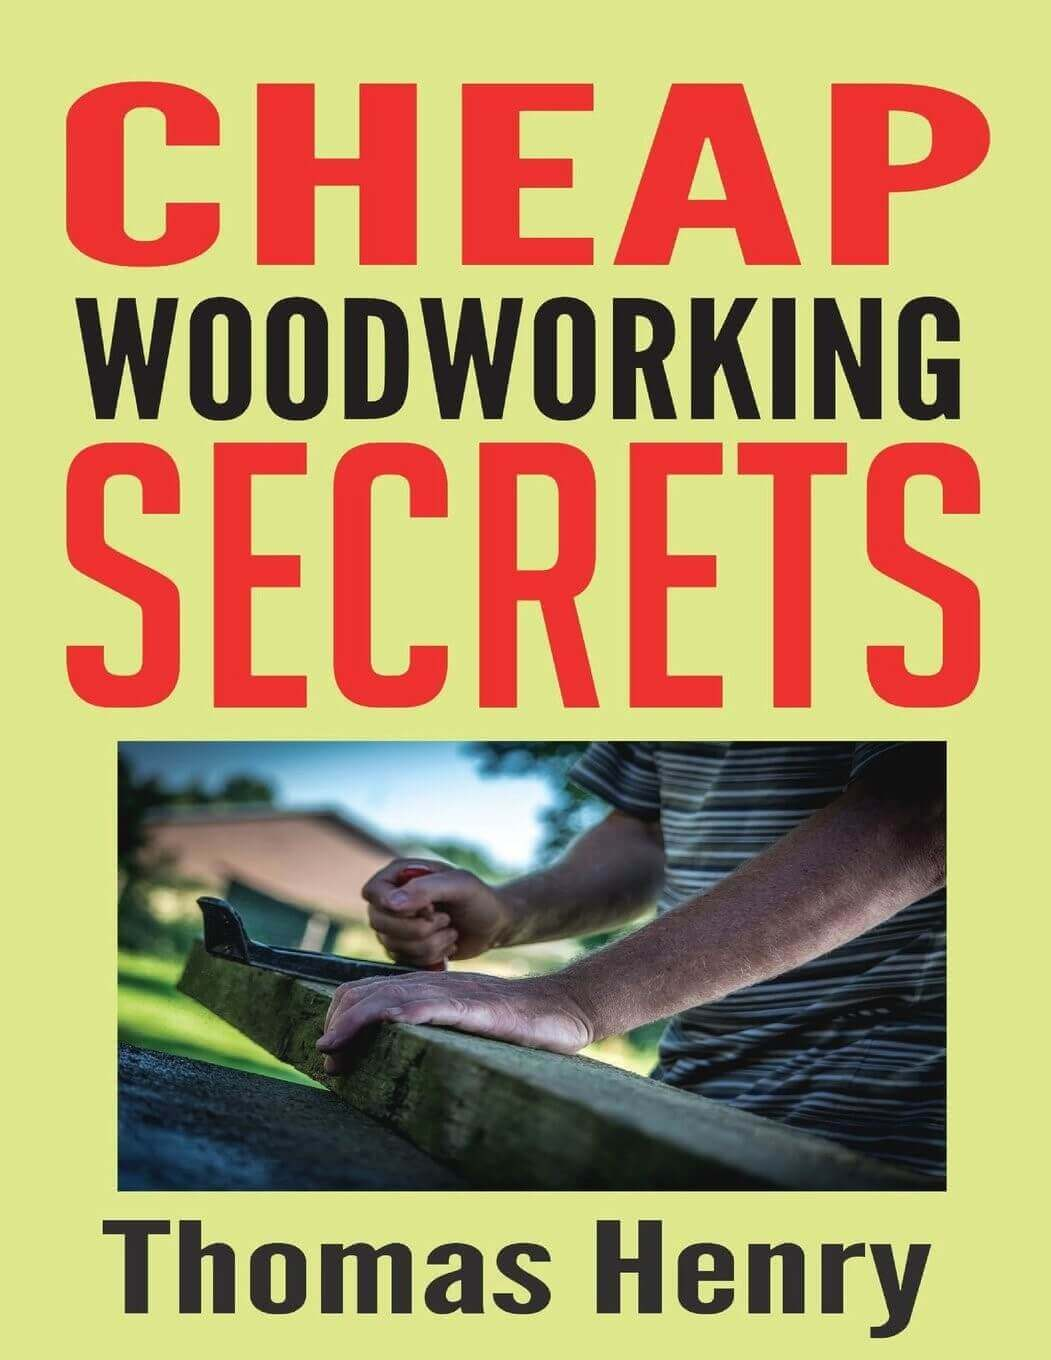 Cheap Woodworking Secrets Really Work or Not? My Review